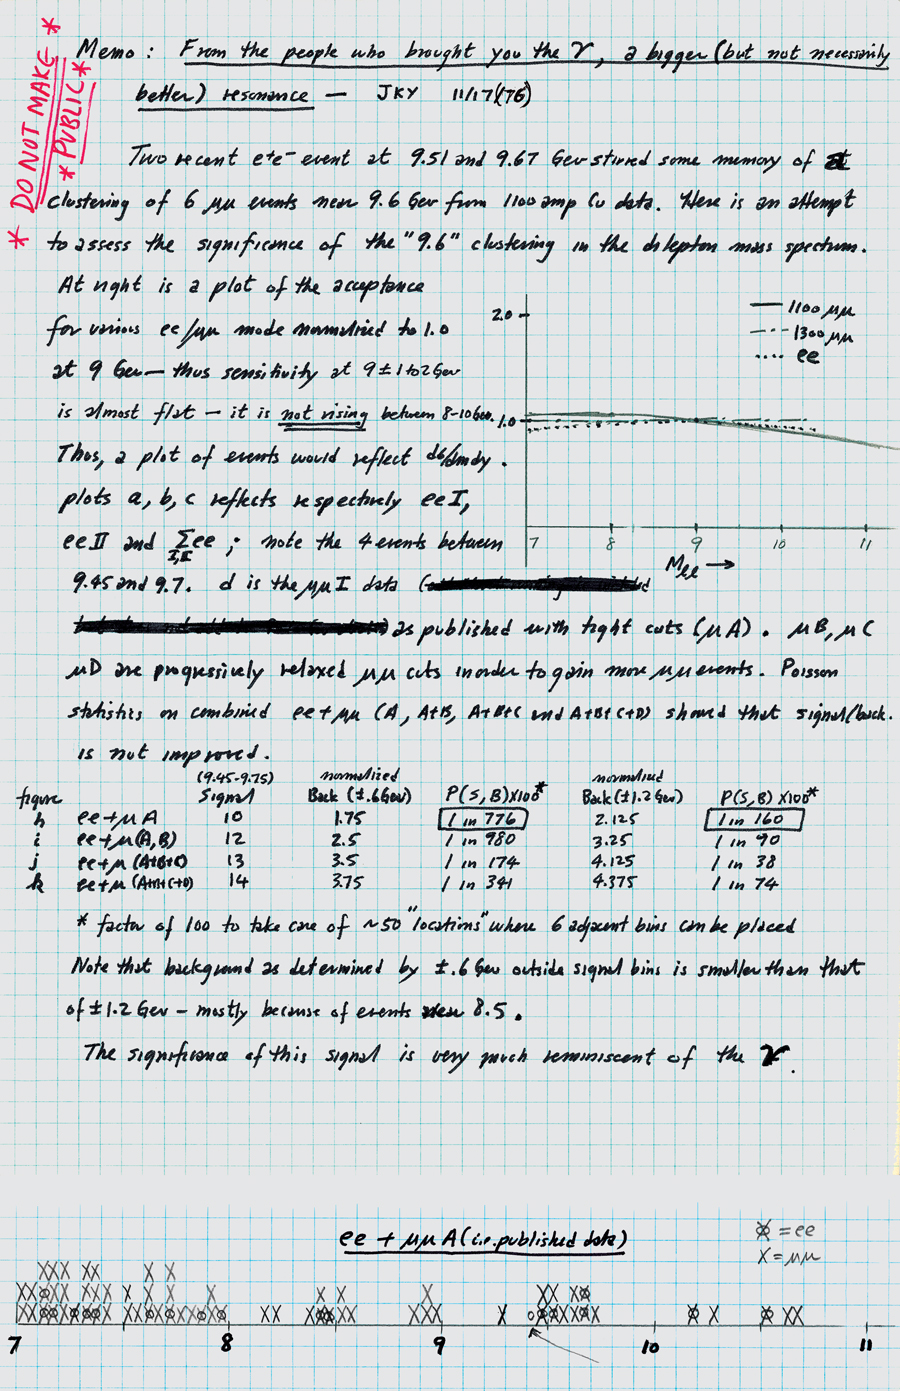 Logbook of Bottom Quark: Oct 2005